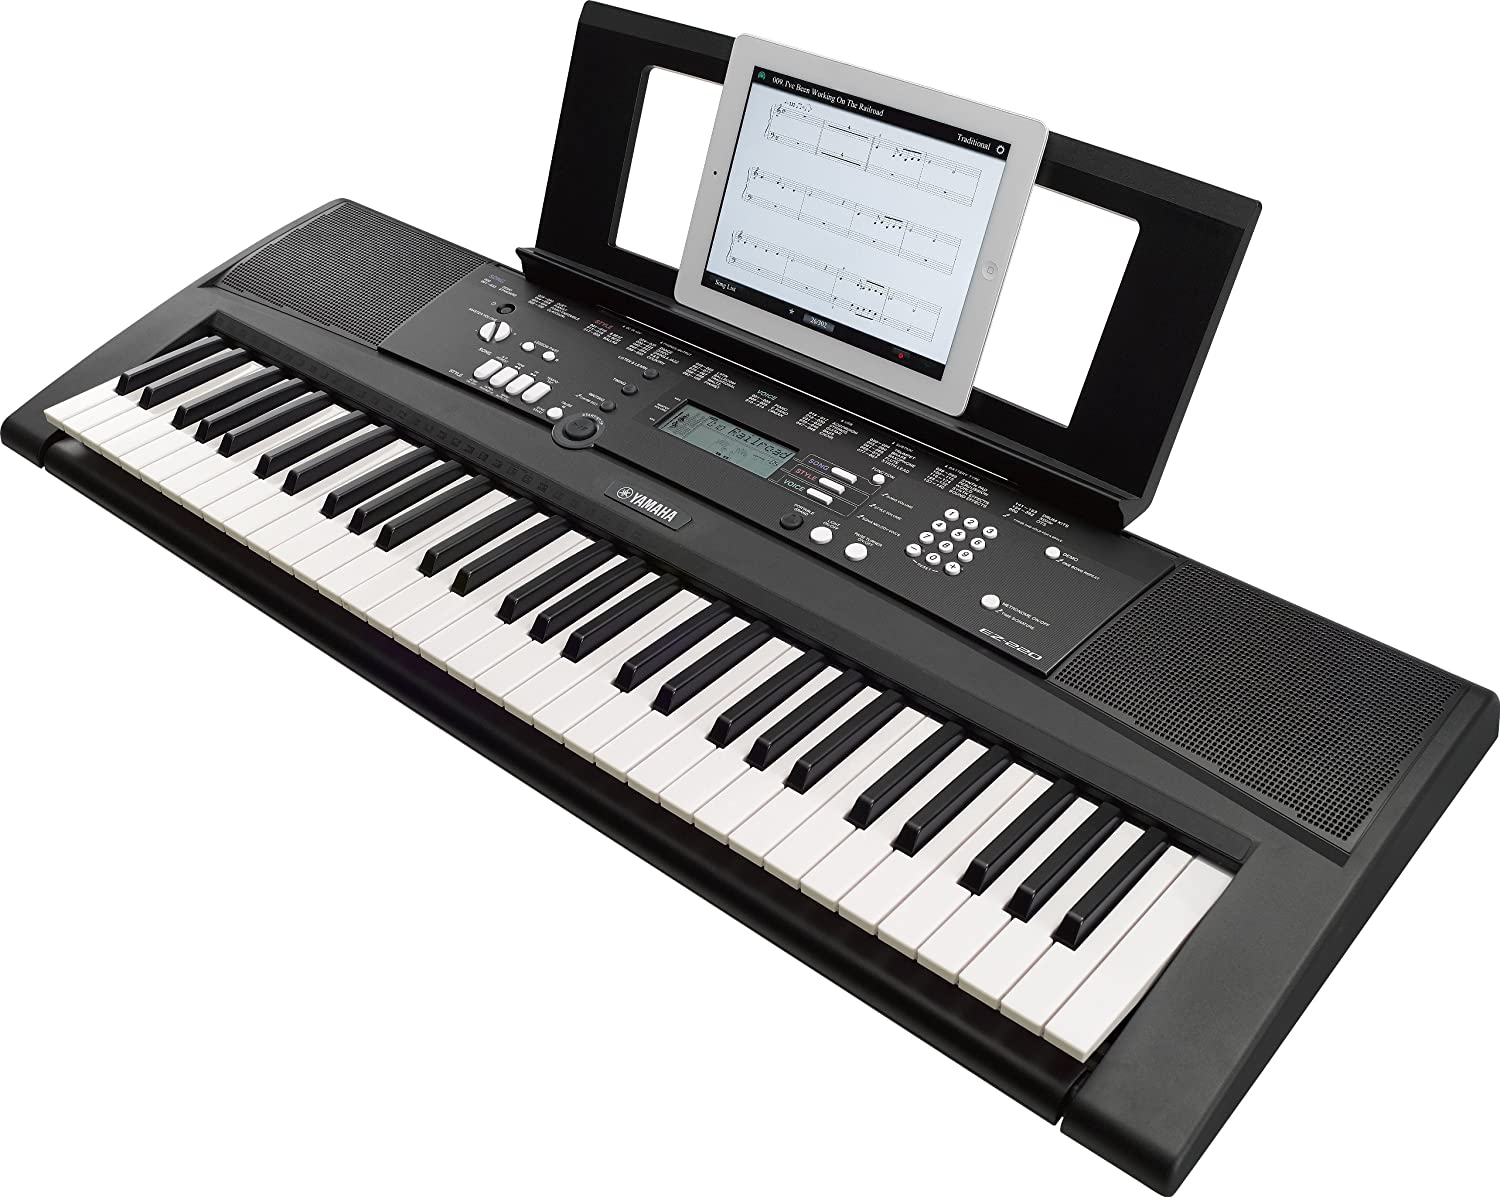 Yamaha piano keyboards images galleries with a bite for Yamaha portable grand dgx 220 electronic keyboard